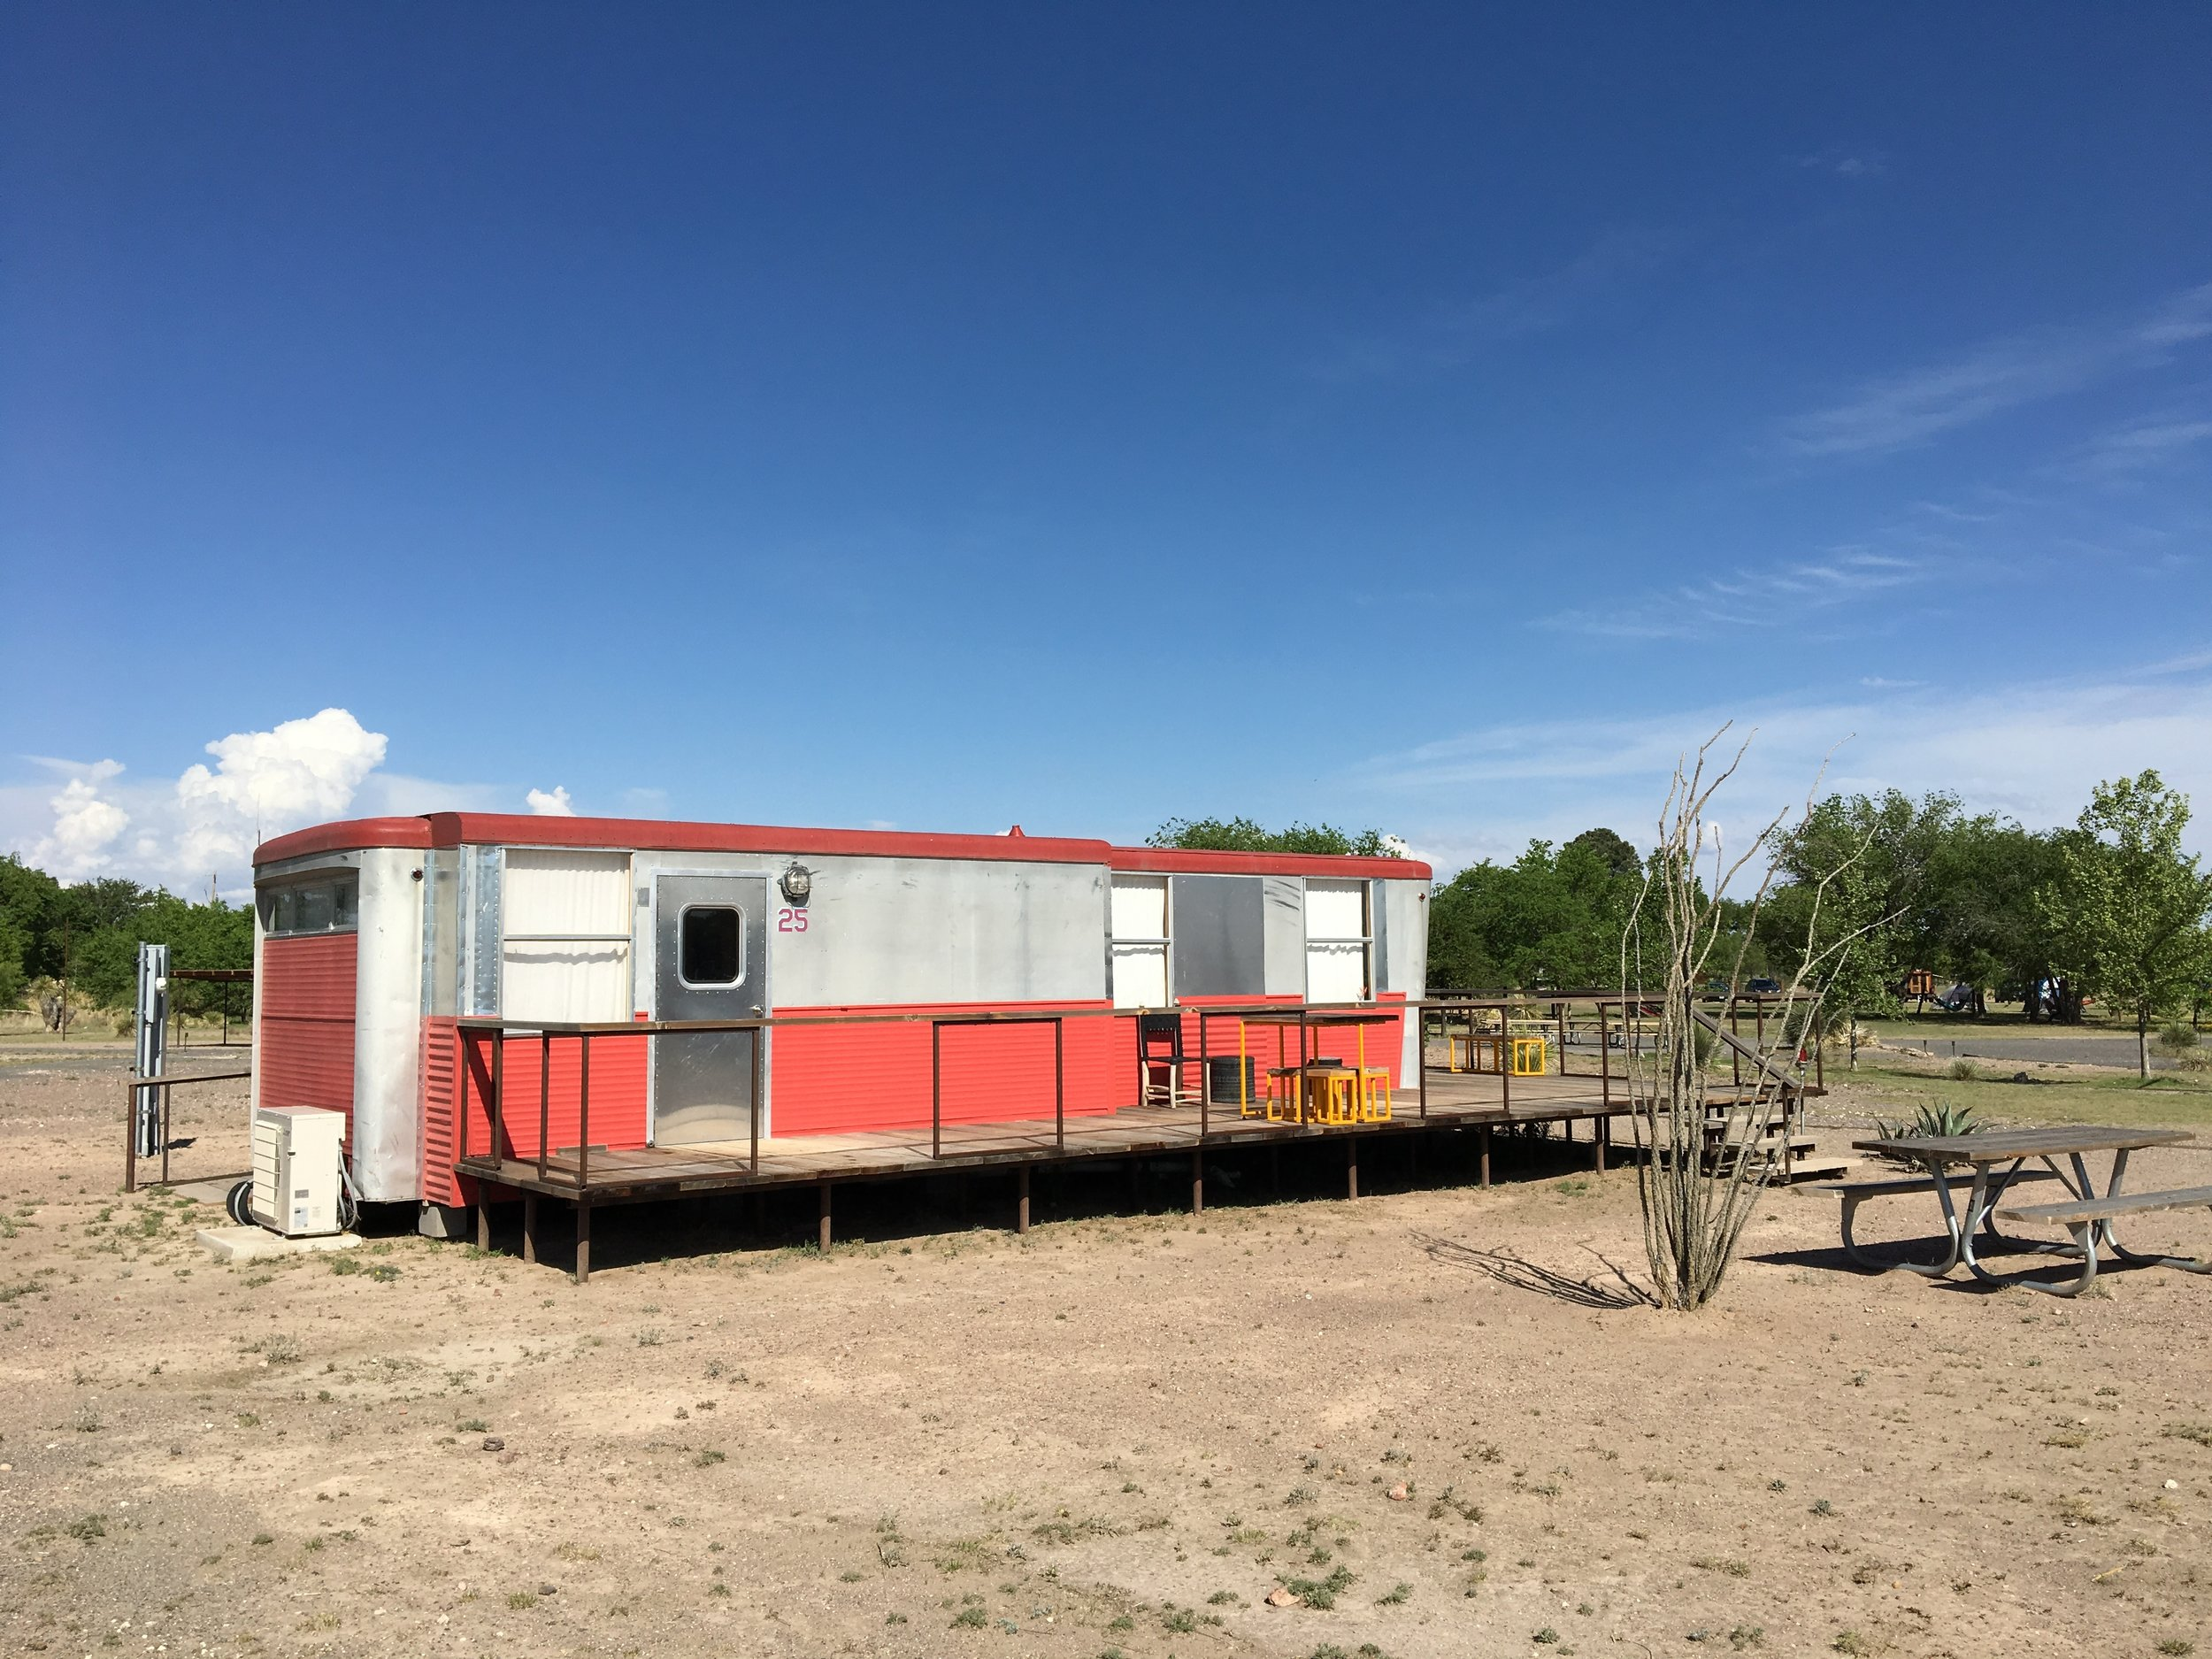 Accommodations in Marfa